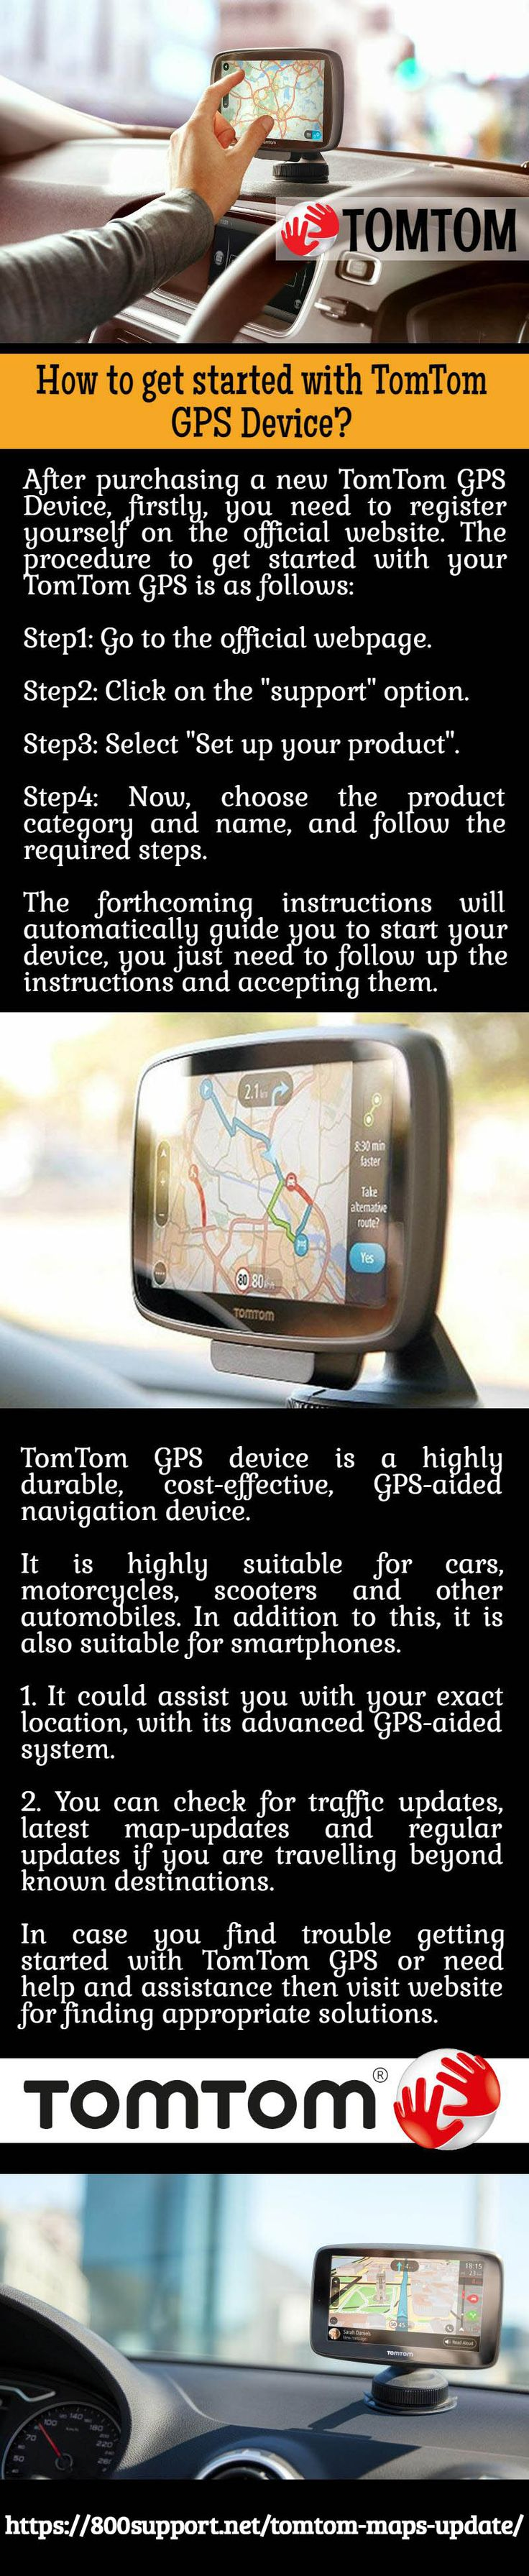 With tomtom global positioning system gps device you ll never get lost